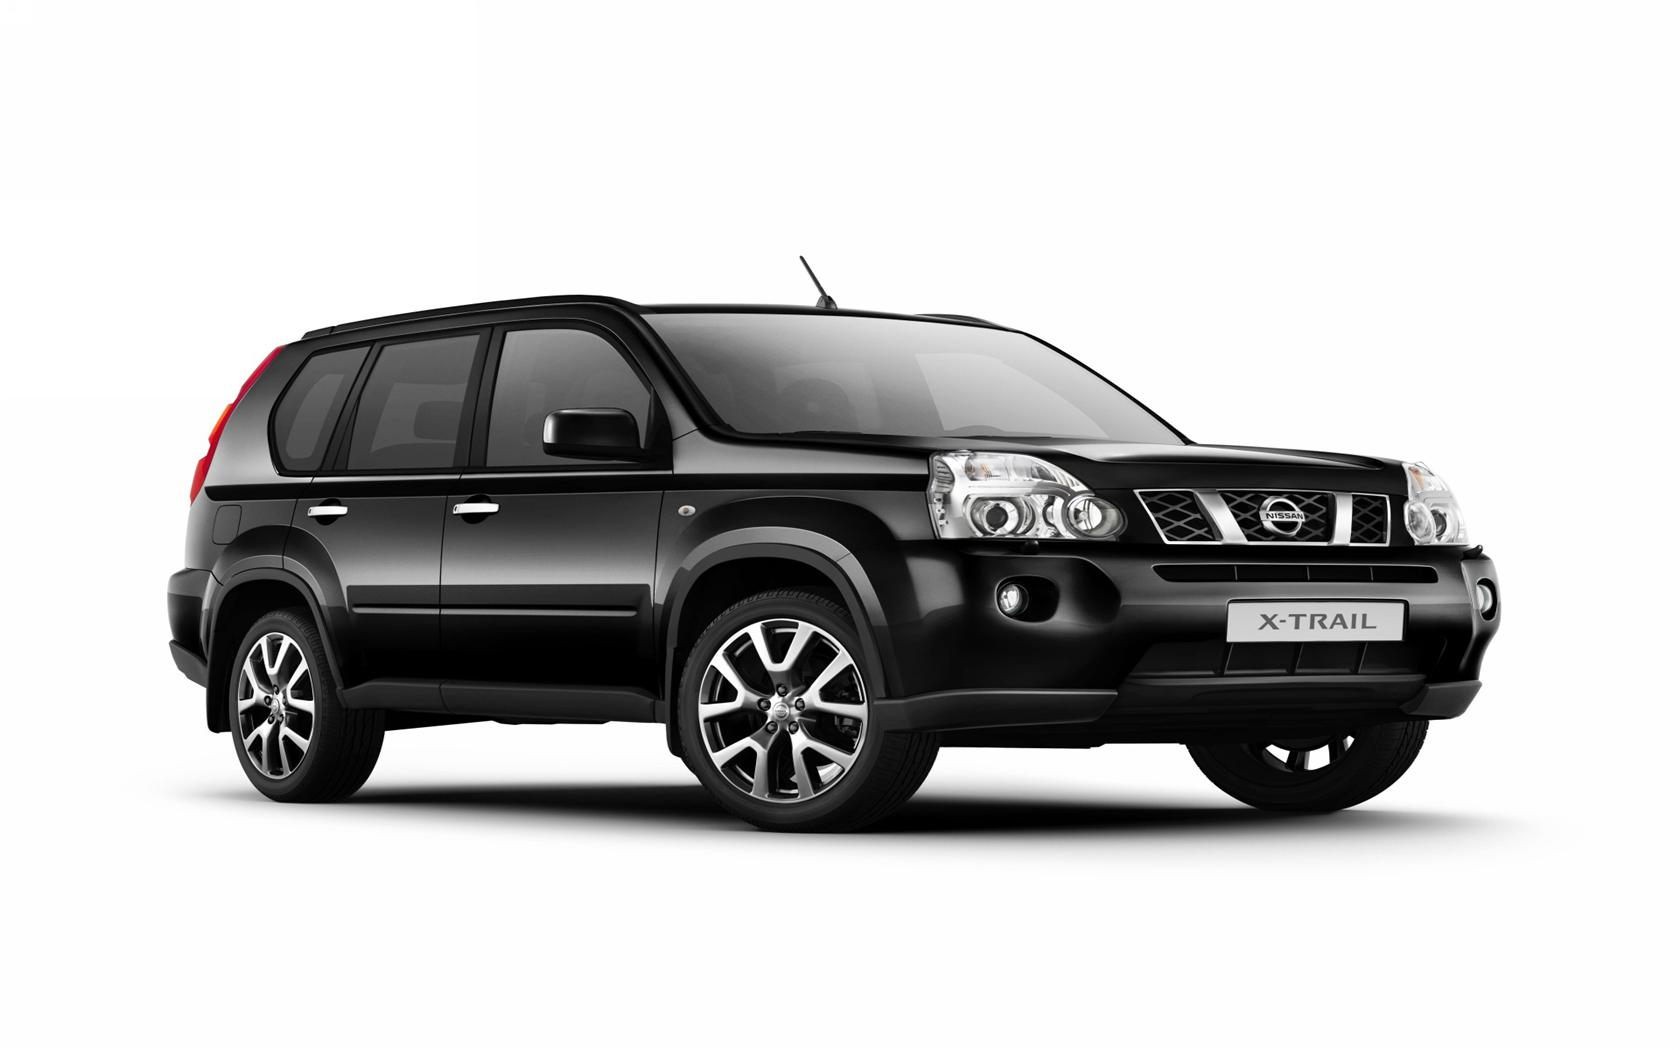 2009 nissan x trail photos informations articles. Black Bedroom Furniture Sets. Home Design Ideas